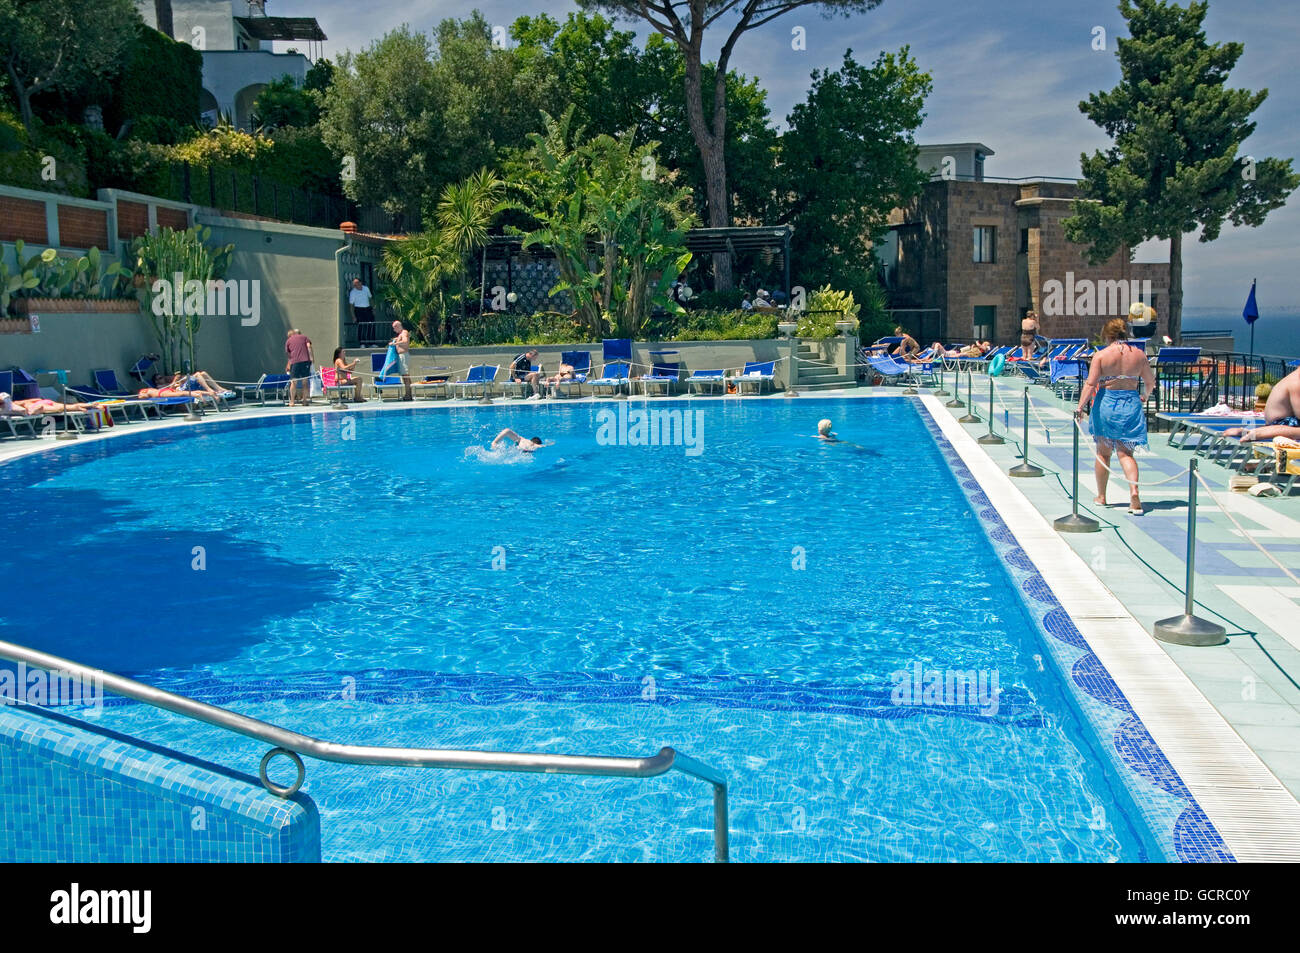 A swimming pool at the bristol hotel hotel in sorrento - Hotel in sorrento italy with swimming pool ...